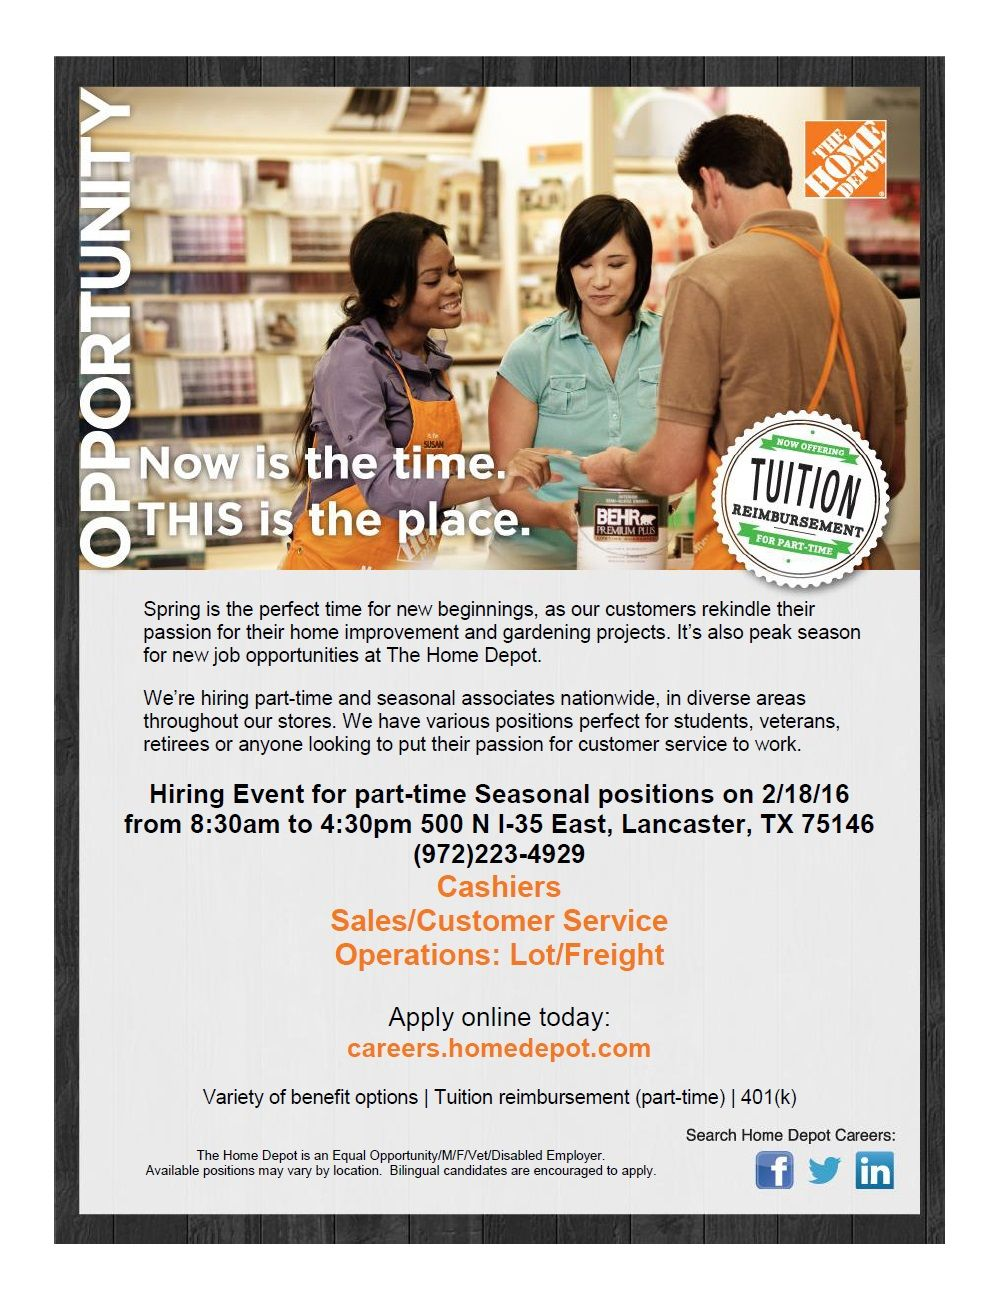 The Home Depot is hiring in the Southern sector of Dallas